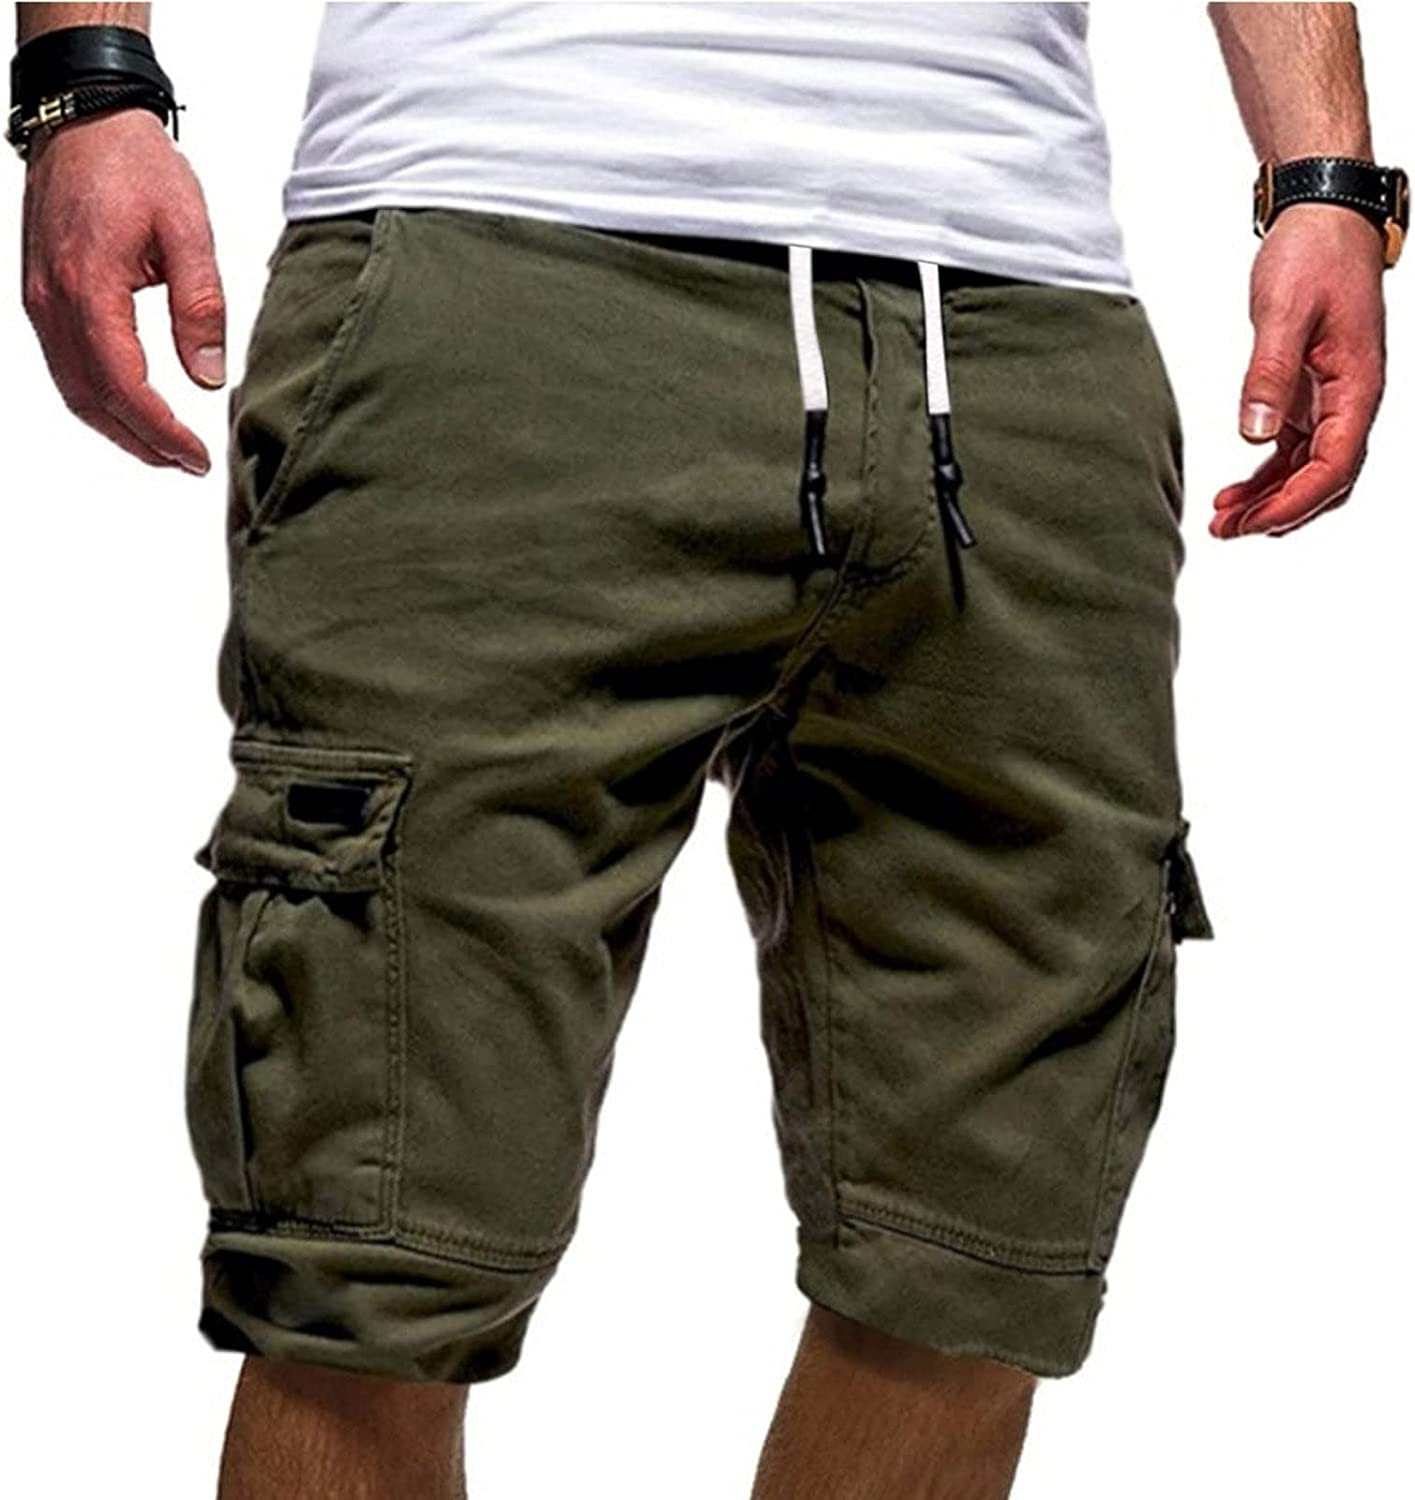 Ugood Men's Cargo Shorts Casual Plus Size Multi Pocket Tooling Sports Shorts Five Point Pant Solid Color Cotton Shorts